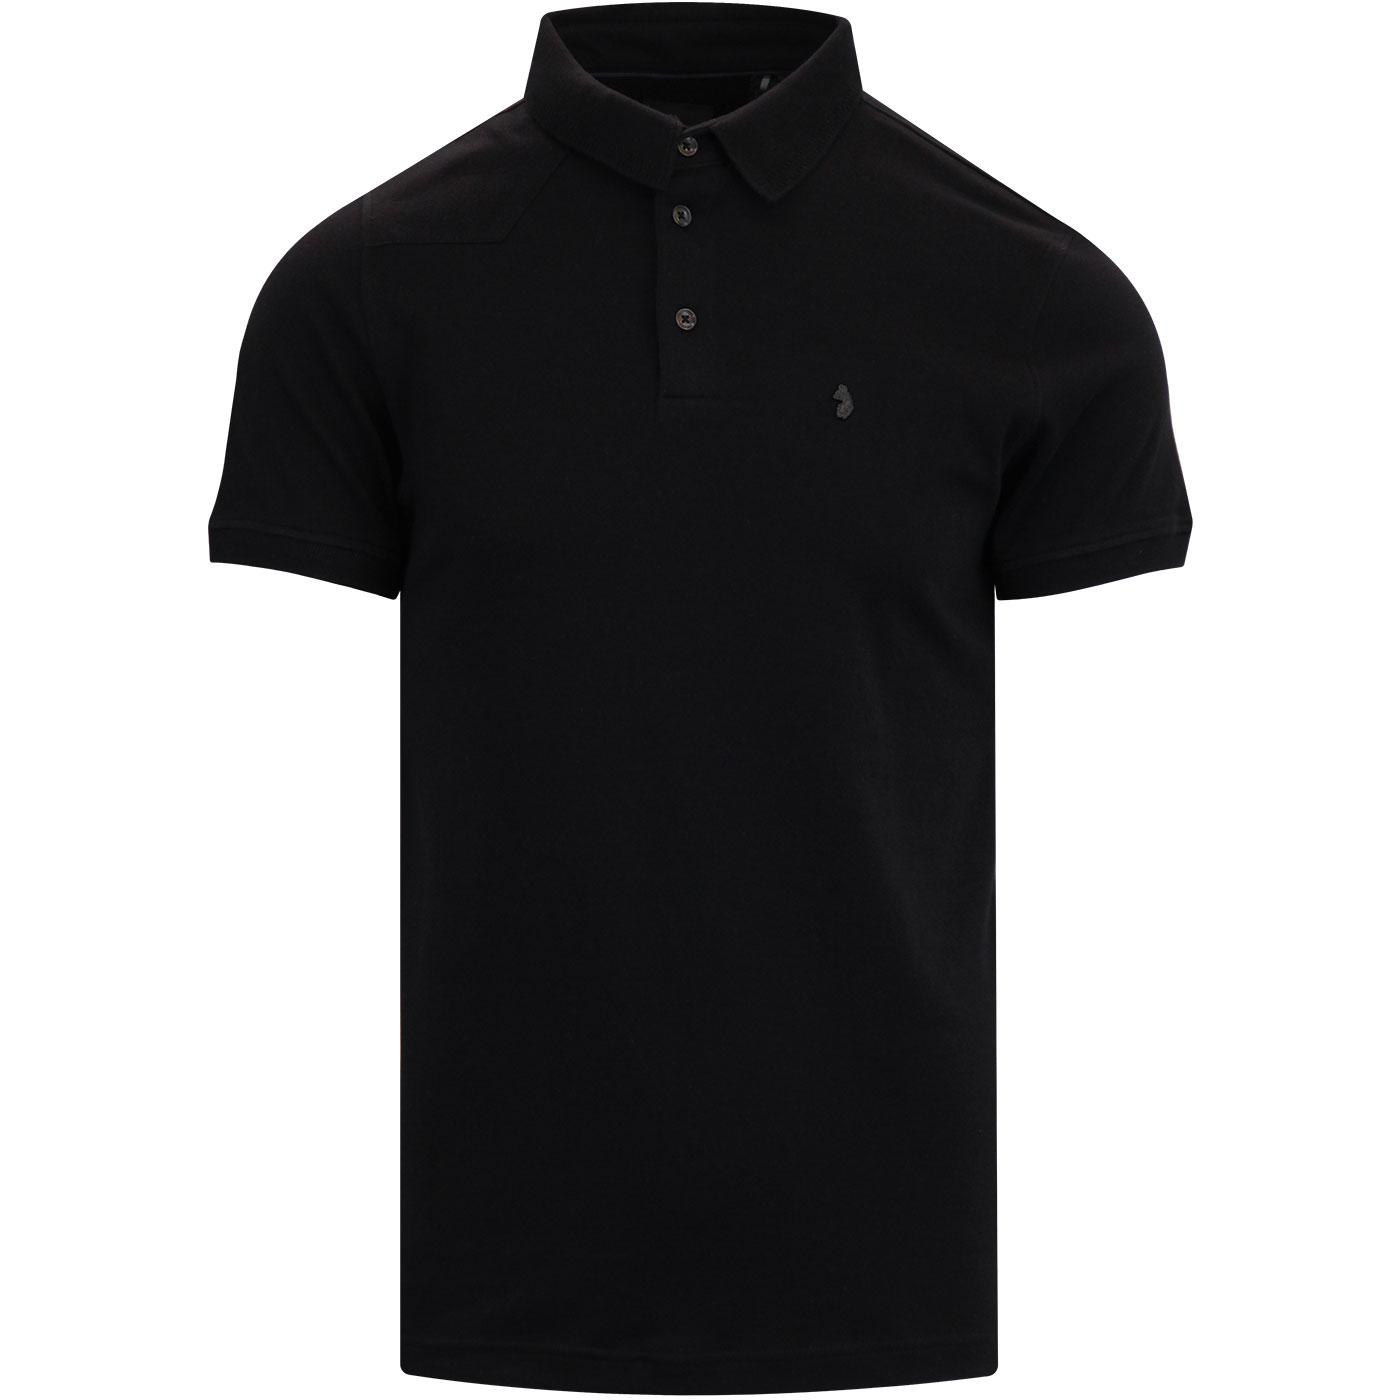 Gentry LUKE Knitted Collar Mod Polo Top JET BLACK